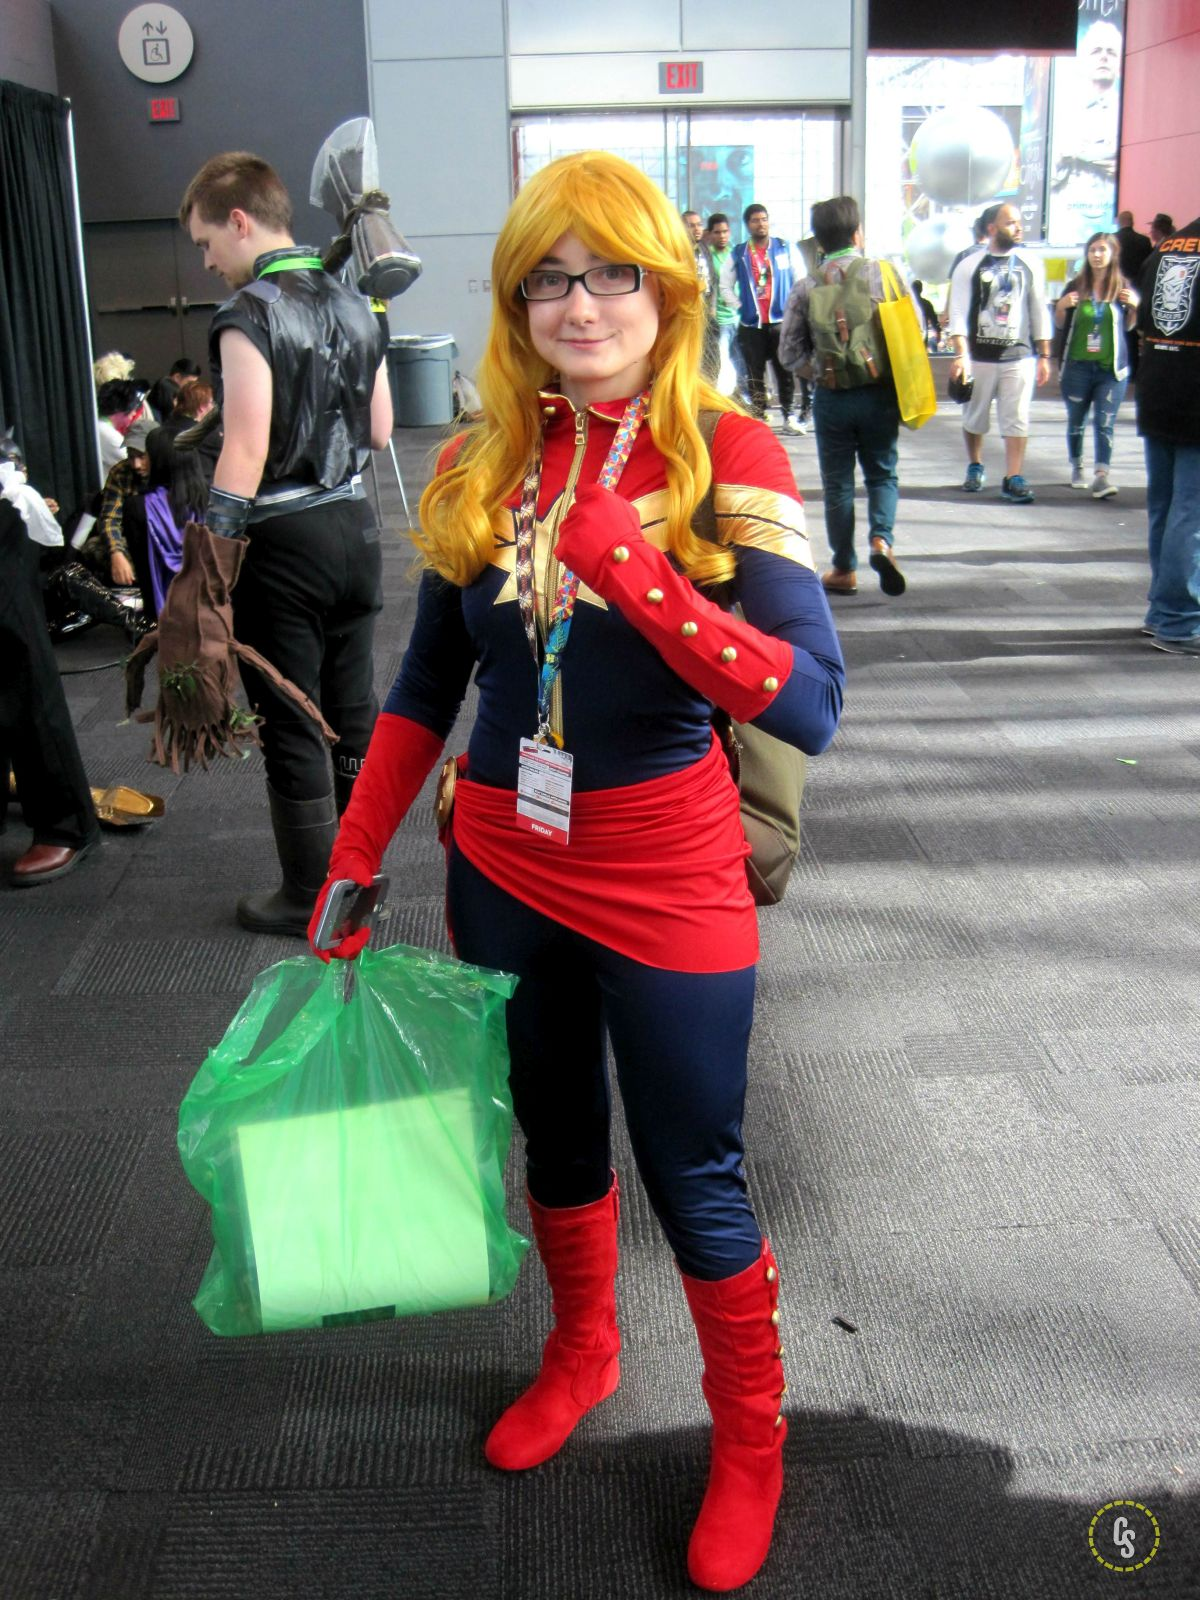 nycc182_079